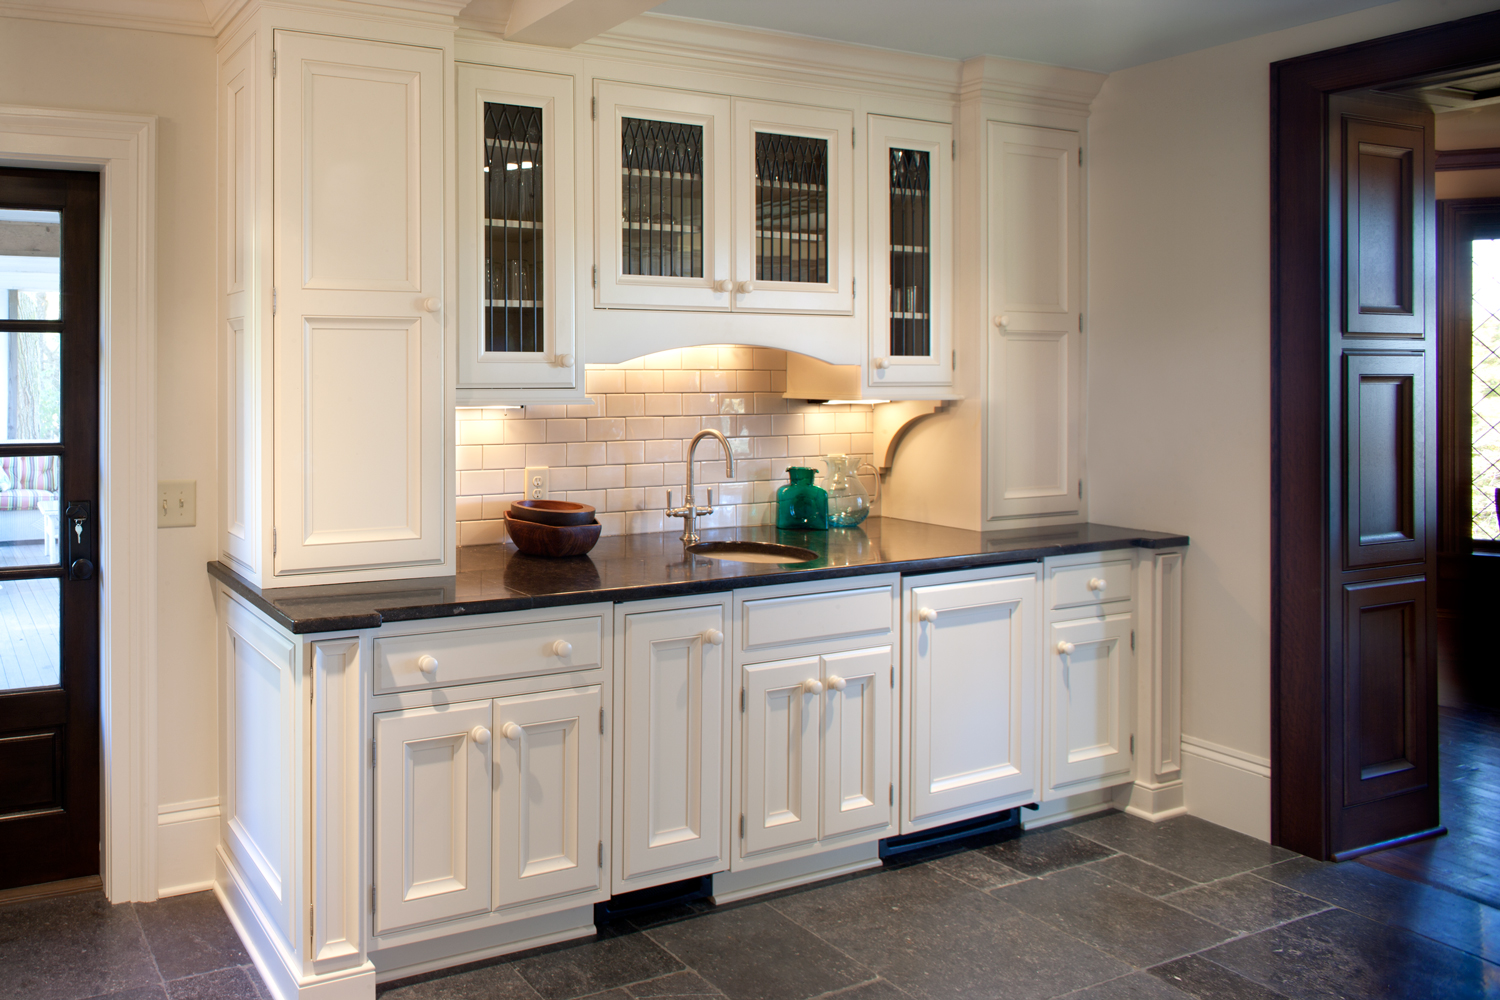 A 1 Custom Cabinets Custom Cabinetry Carried By Beck Allen Cabinetry Interior Design